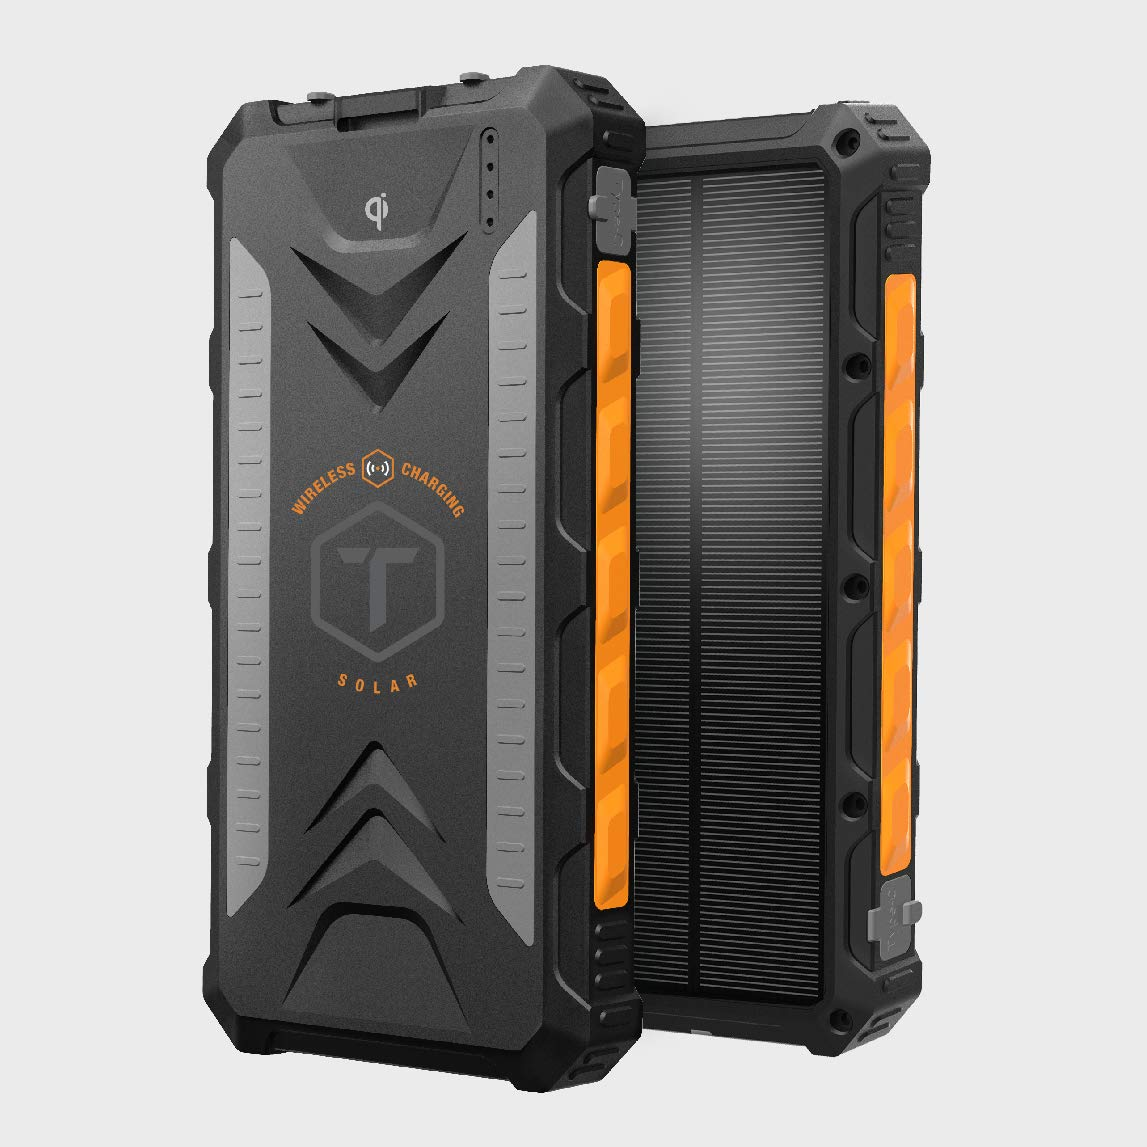 ToughTested - 10000mAh Solar Charger Portable Battery Pack Wireless Waterproof Charger IP65 Rating by ToughTested